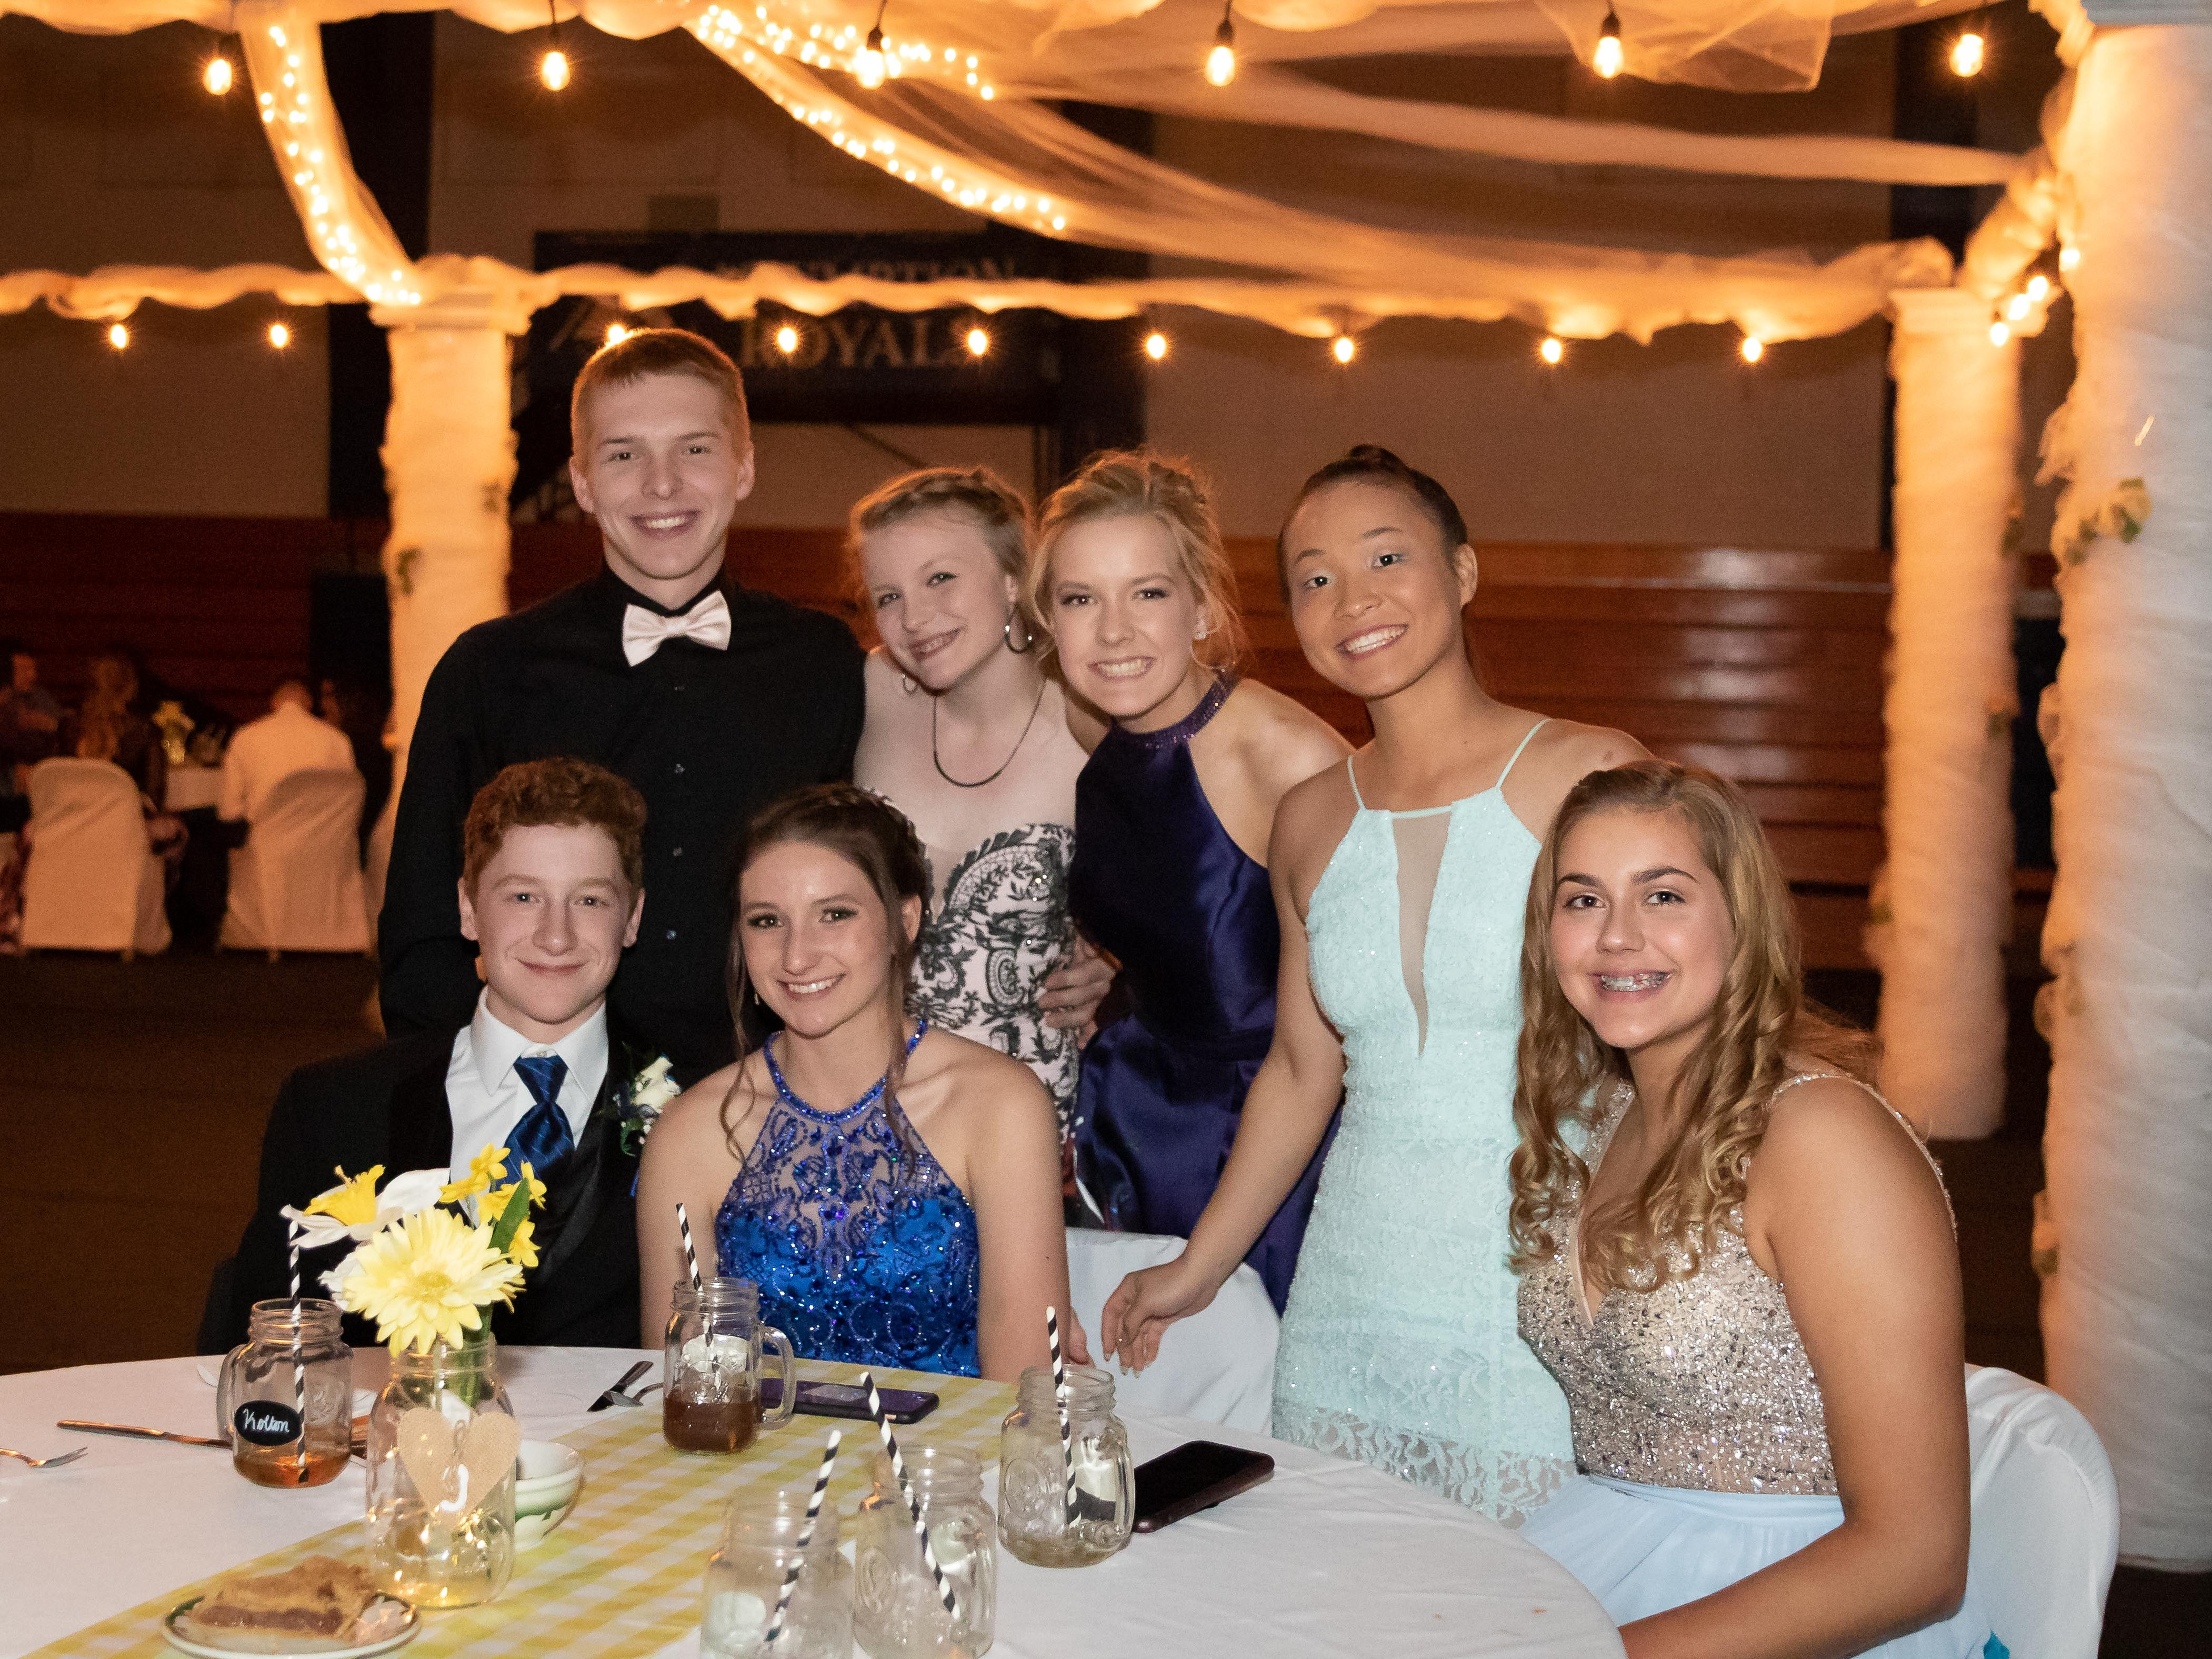 The Assumption High School prom was held on Saturday, April 27, 2019, at Assumption High School.